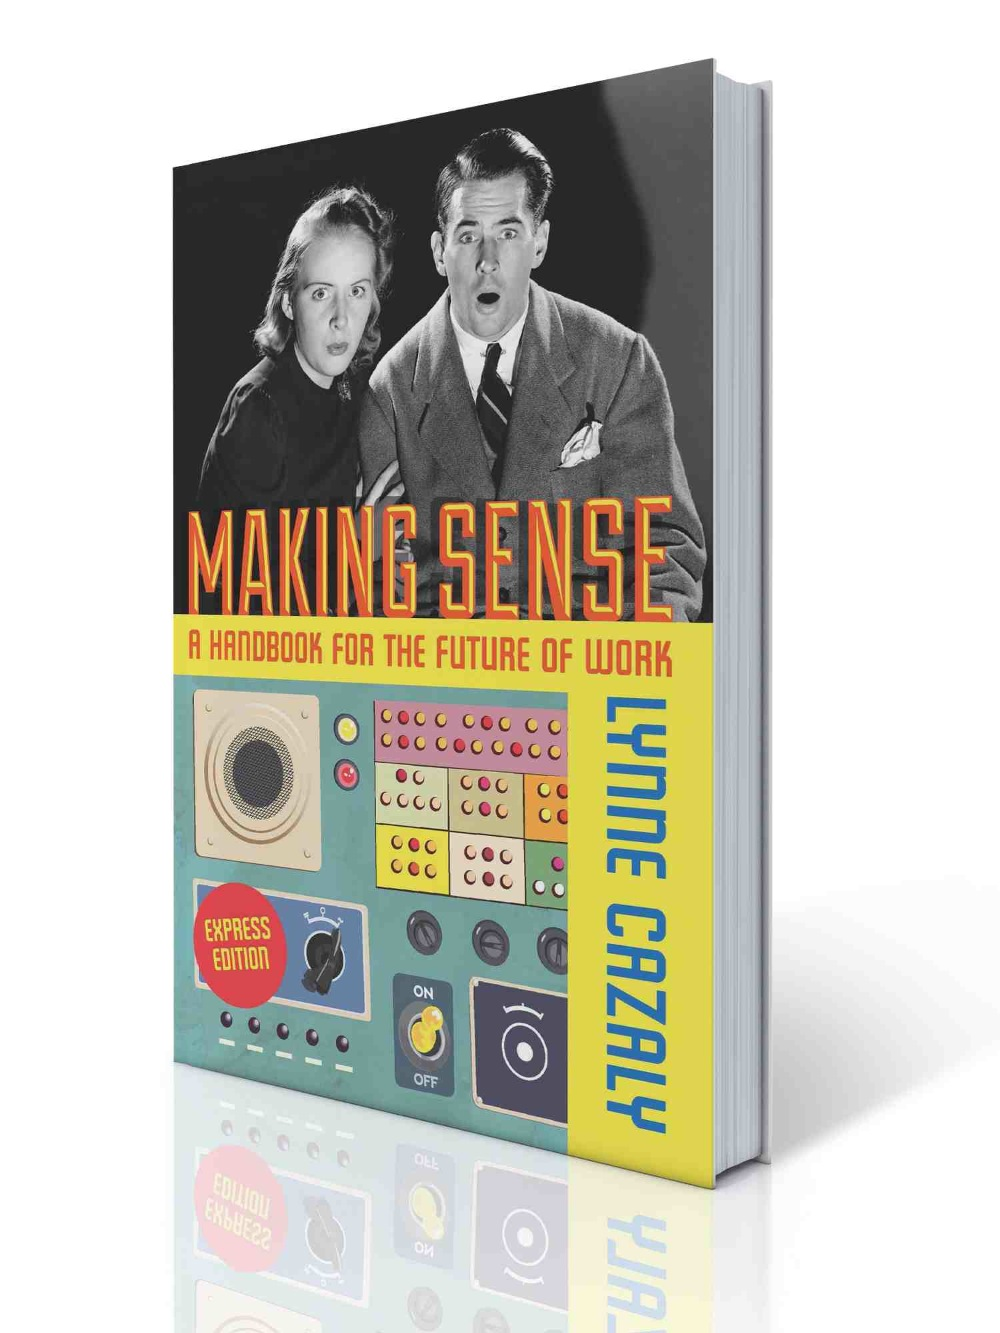 BOOK: Making Sense: A Handbook for the Future of Work